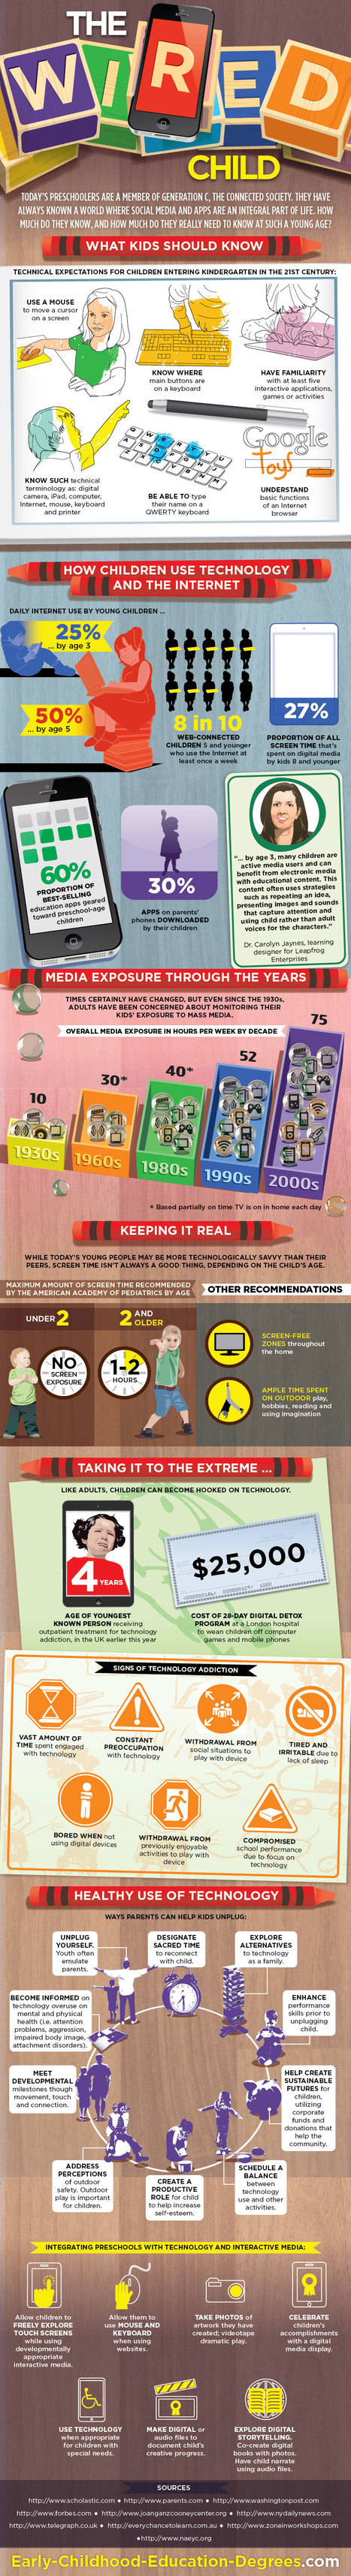 The Complete Visual Guide To Technology For Children [Infographic] | desdeelpasillo | Scoop.it